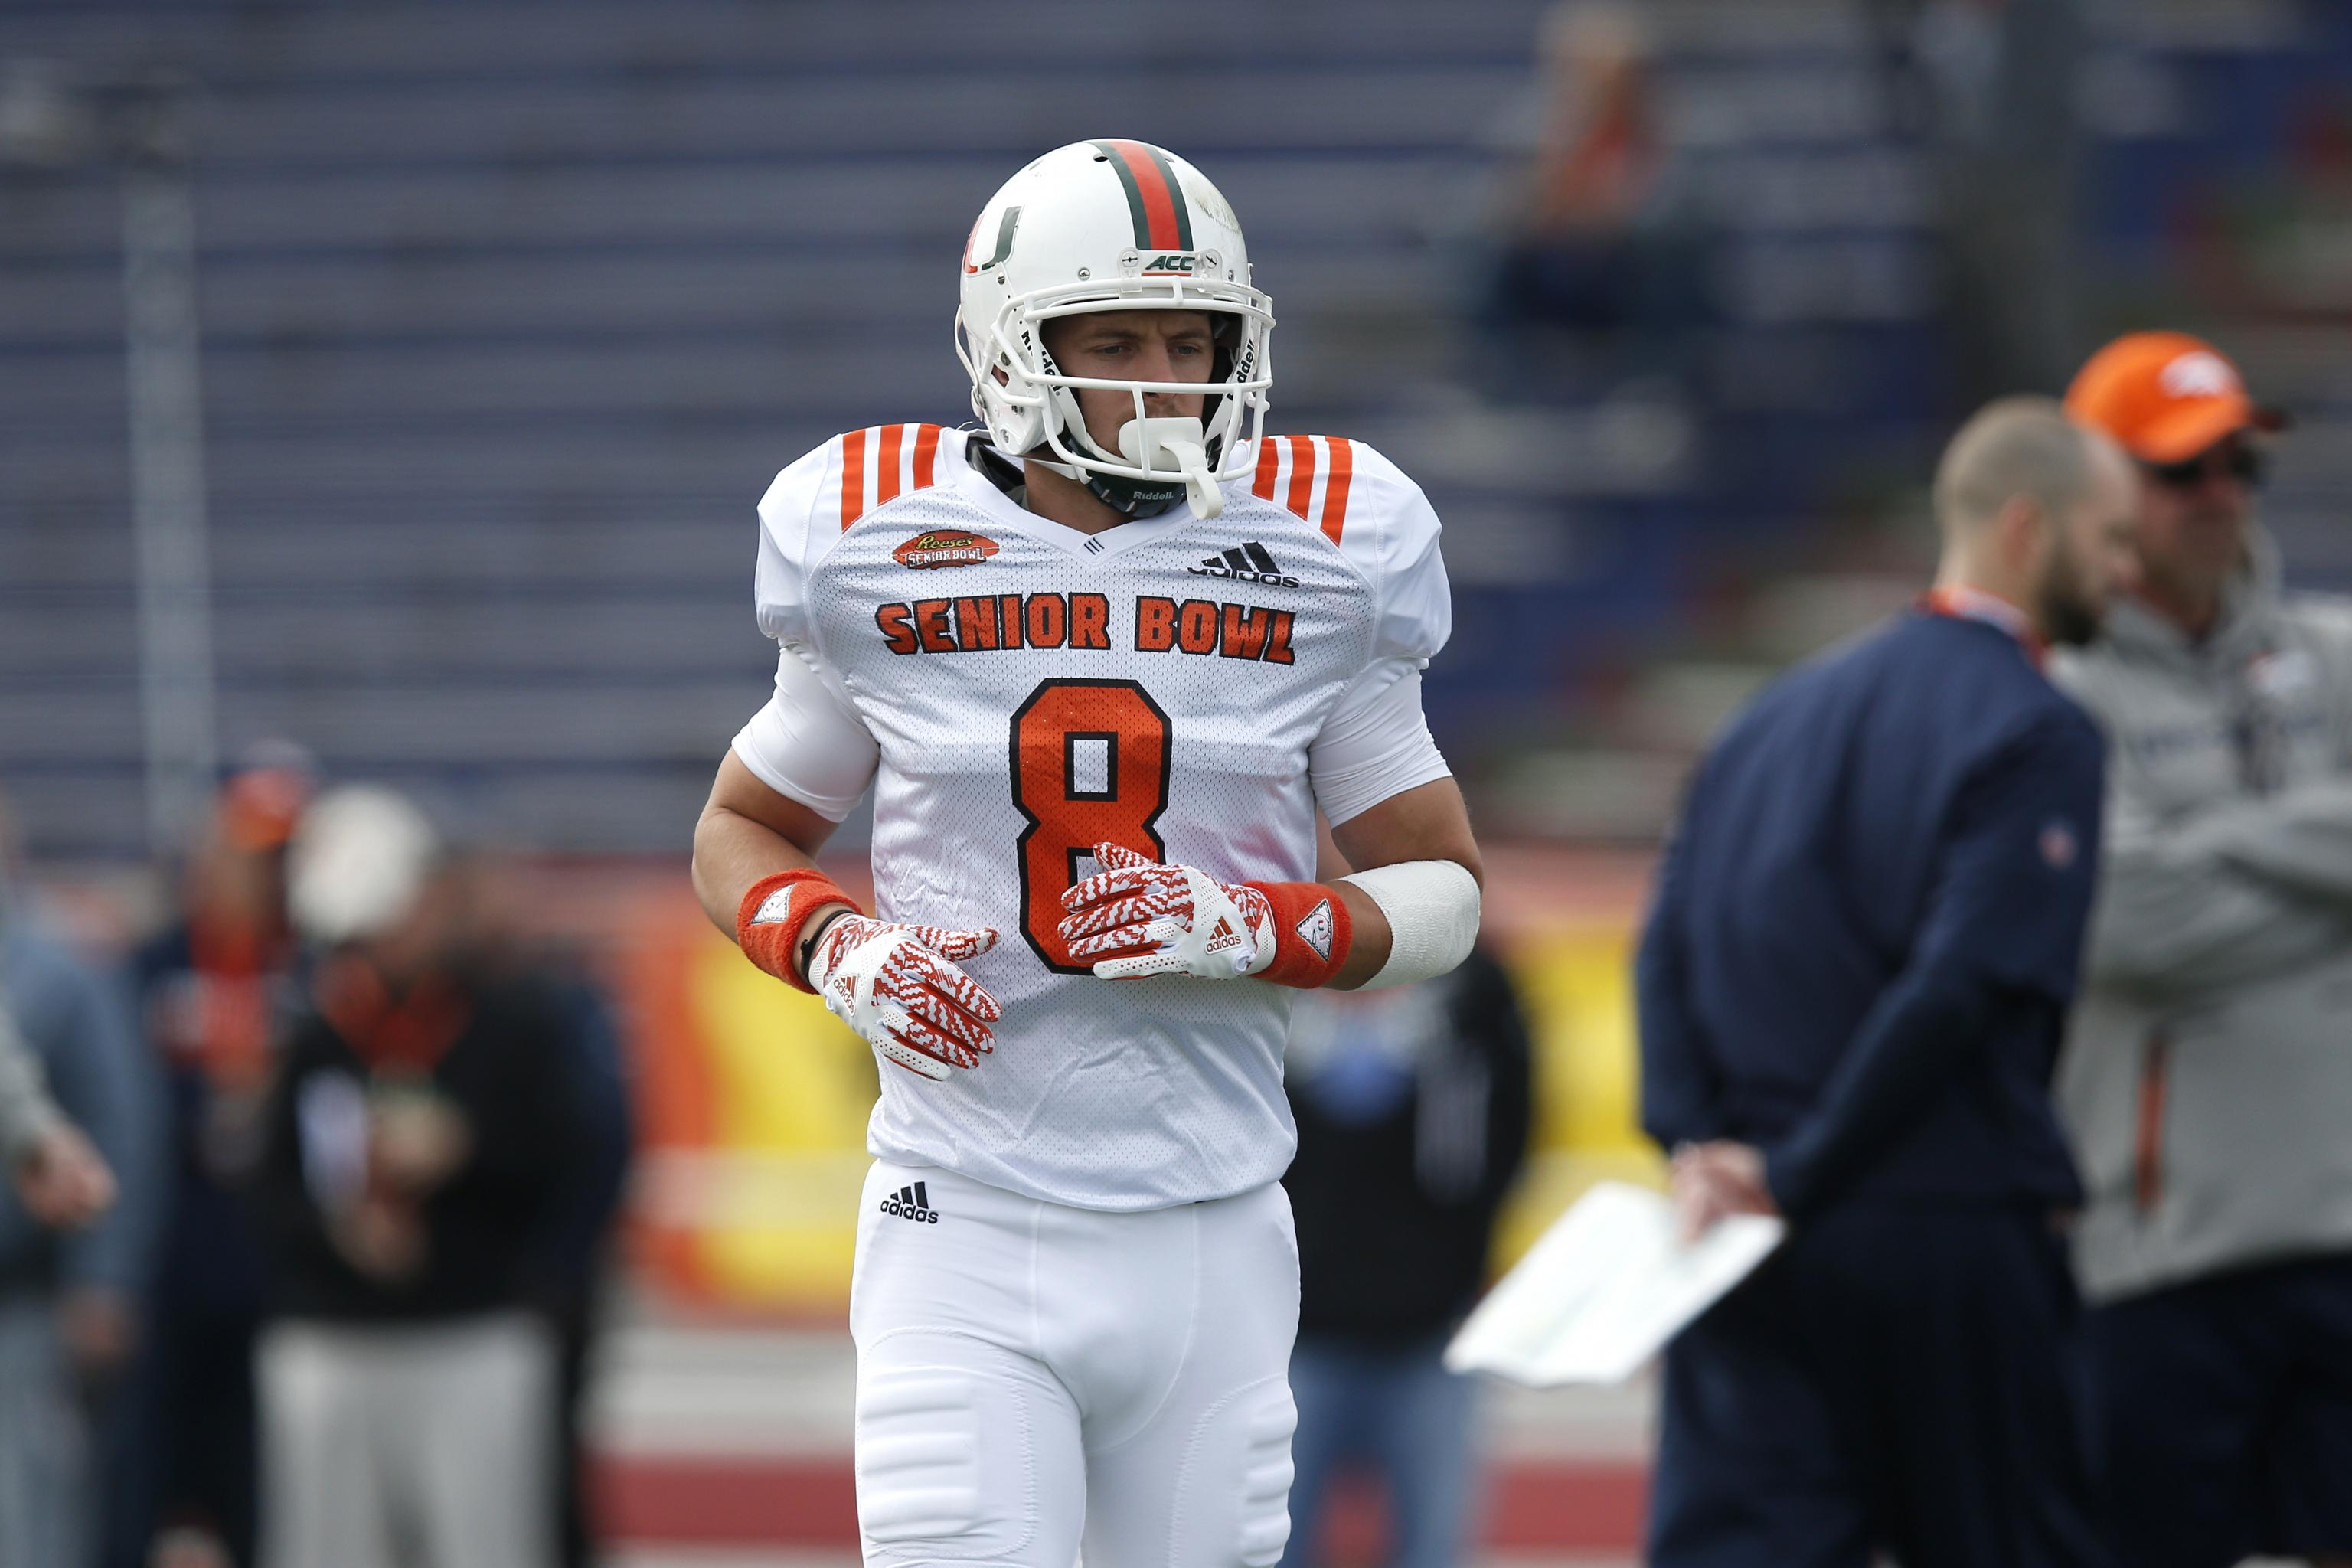 separation shoes 05e58 50f80 Braxton Berrios: Odd Interviews with NFL Teams Included ...